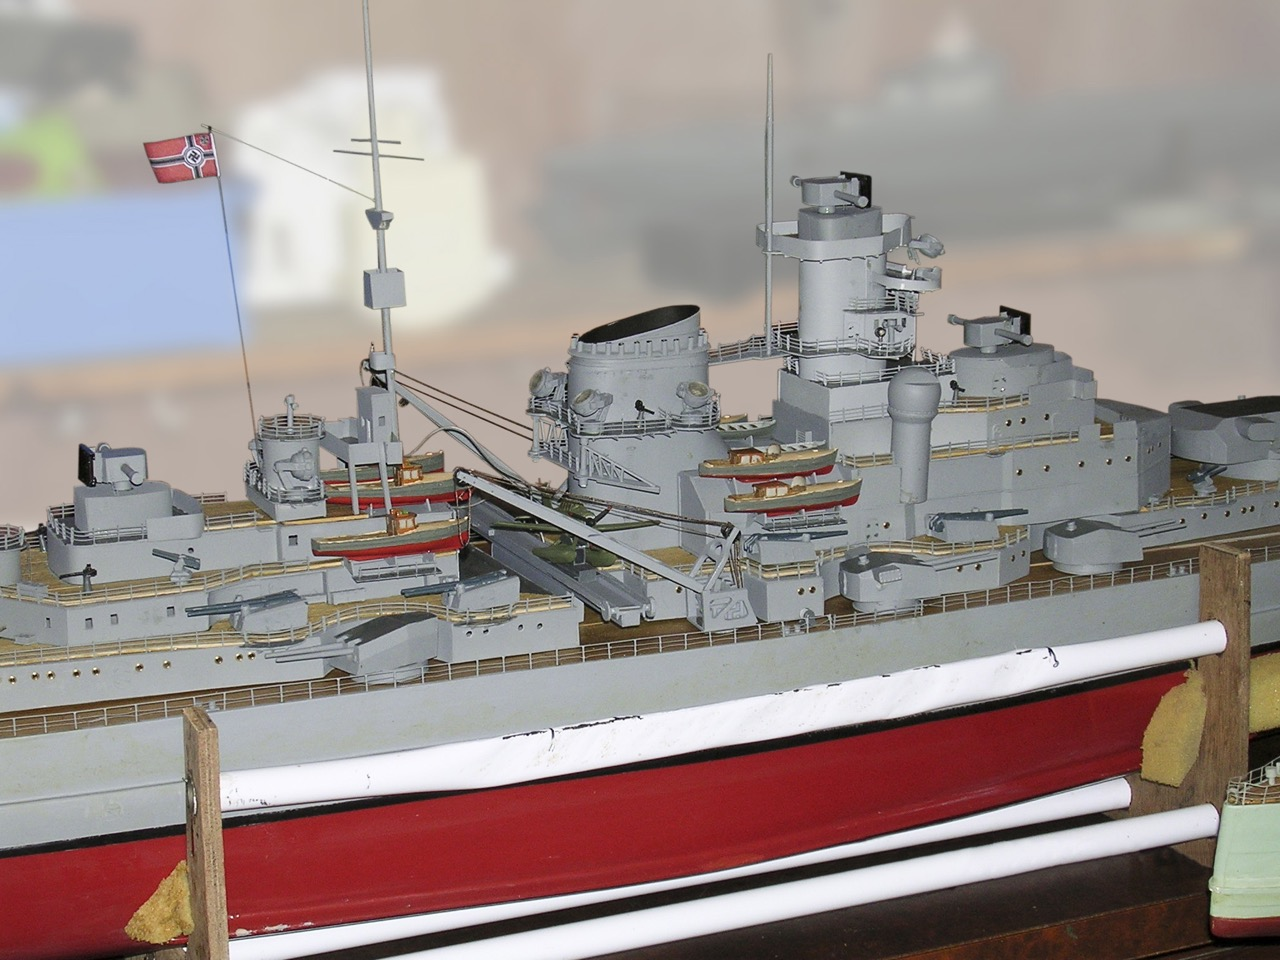 KM Bismarck (from Archie Howie)